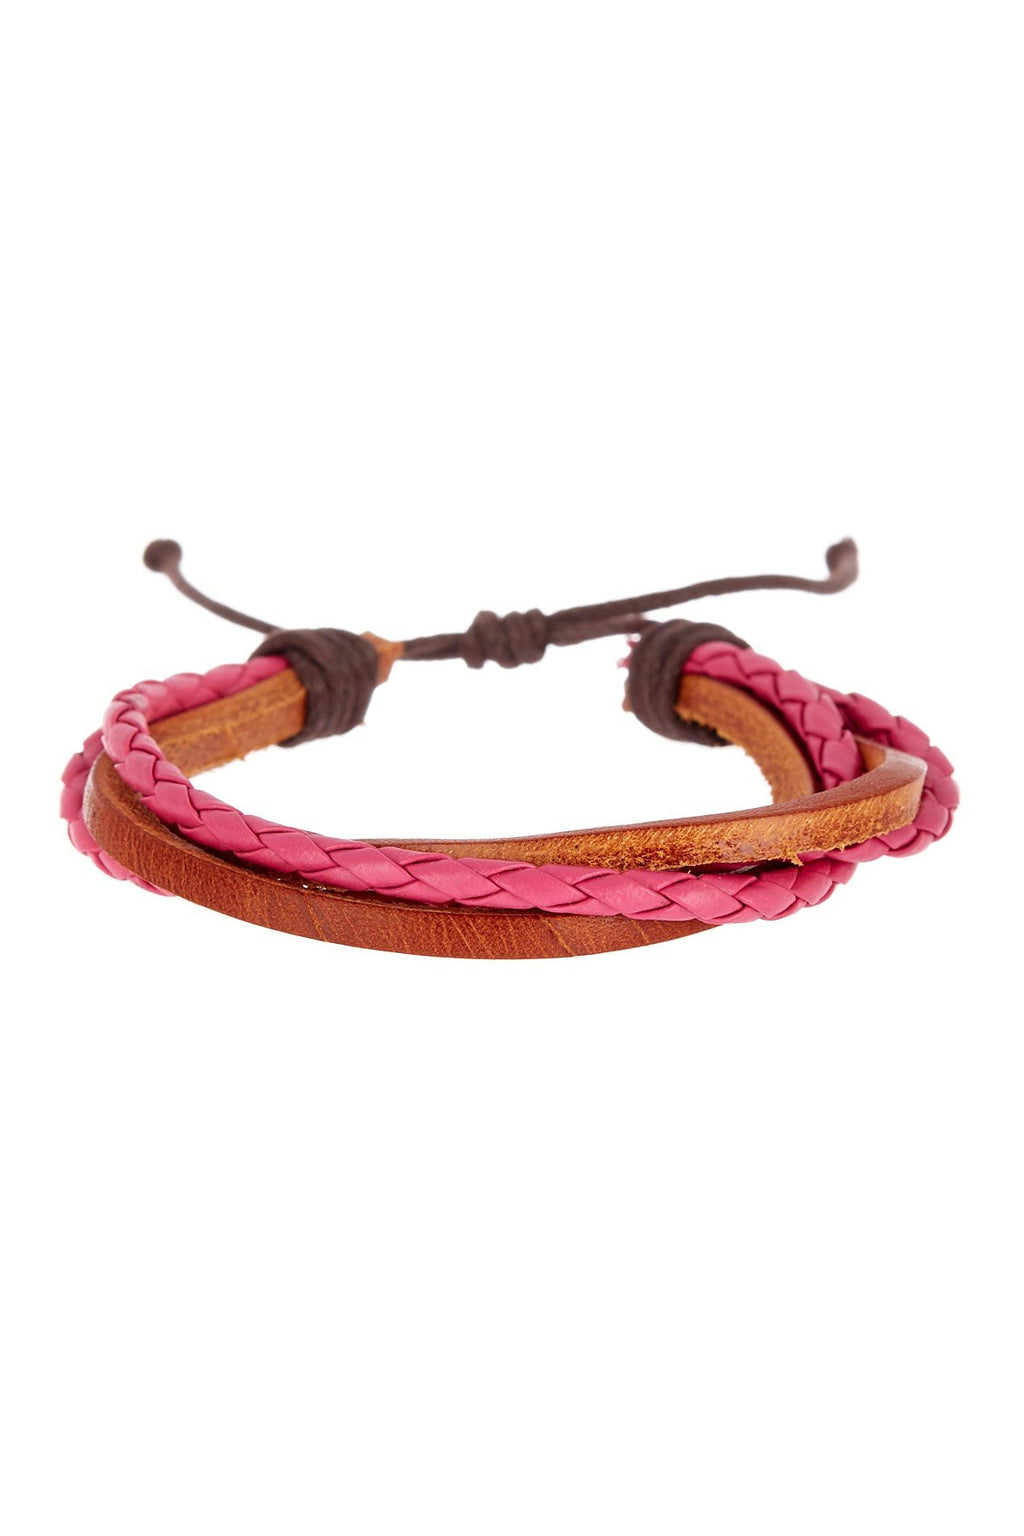 Red & Brown Adjustable Leather Bracelet